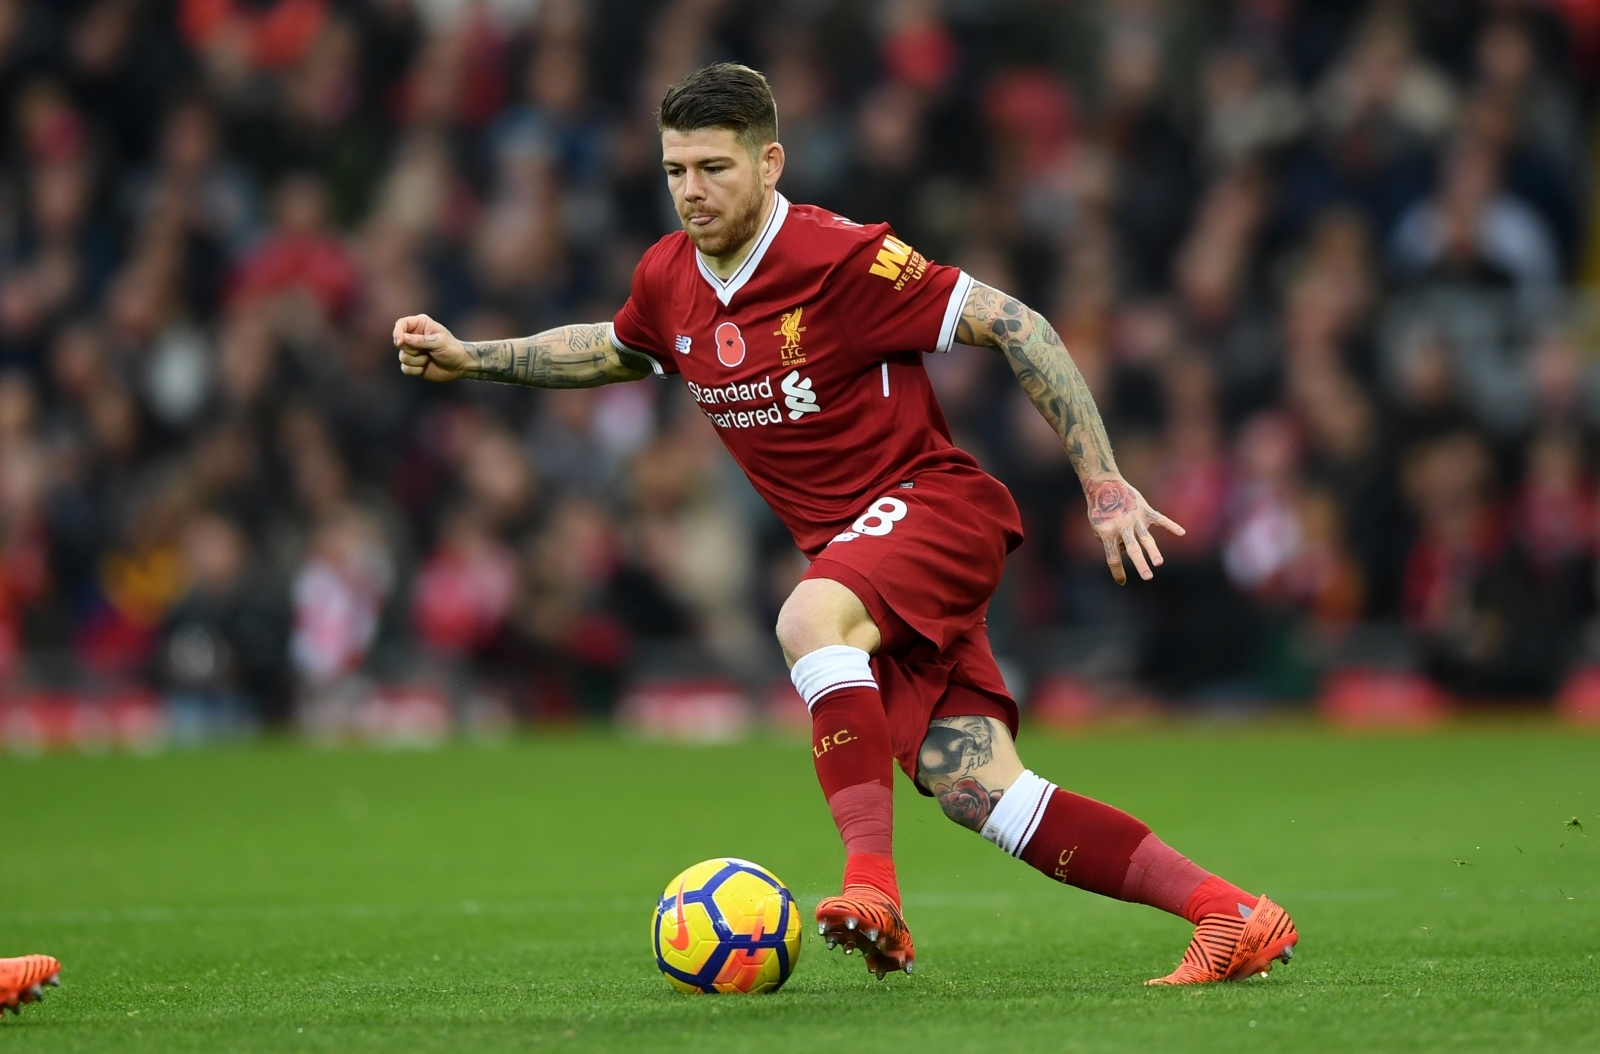 Klopp backs Moreno '100%' despite Sevilla draw